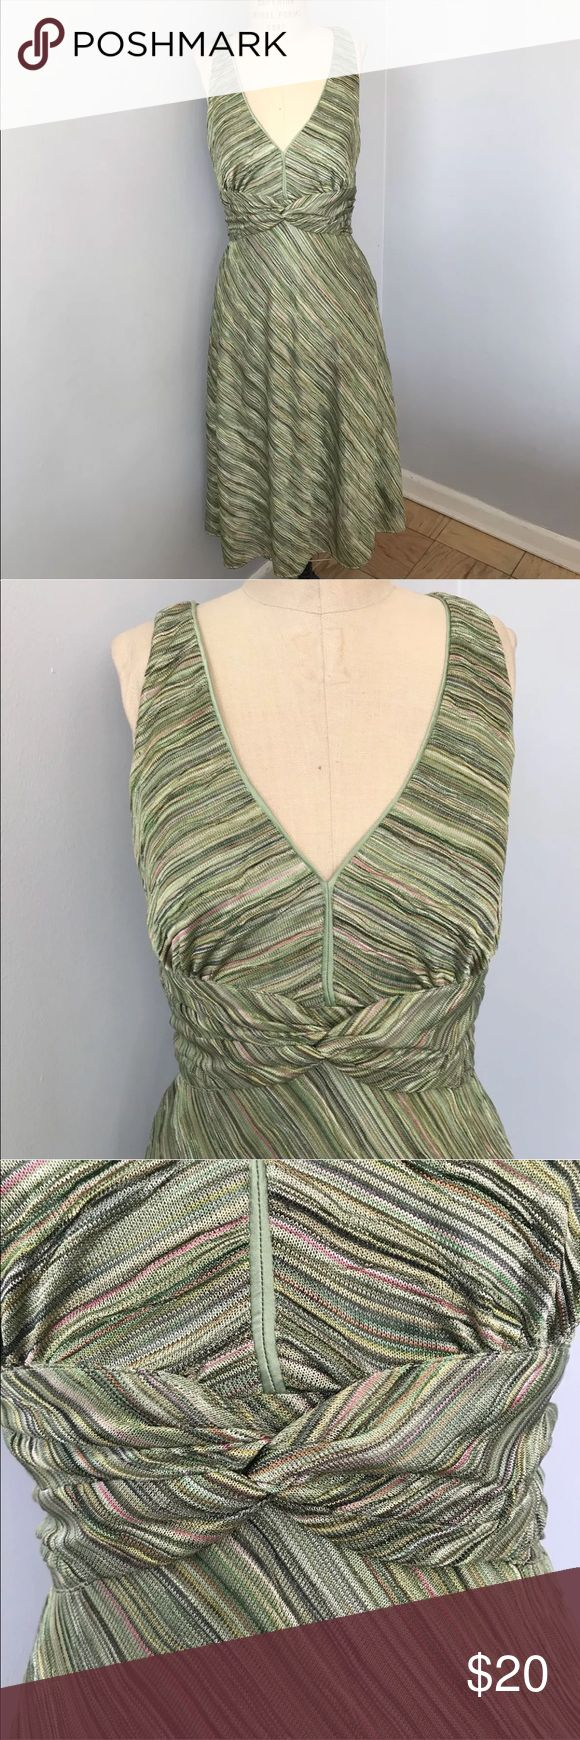 "Kay Unger V-Neck Dress Kay Unger Green Toned V-Neck Princess Bottom Dress  ⭐️Excellent condition with no stains⭐️  DETAILS: Button at neck is missing. You can find a spare one sewn inside (see photo 10)  MEASUREMENTS: 45"" length 38"" bust 32"" waist 40"" hips  ***Please feel free to ask any questions***  💚Thank you for your interest! 💚  (SH073:1224) Kay Unger Dresses"